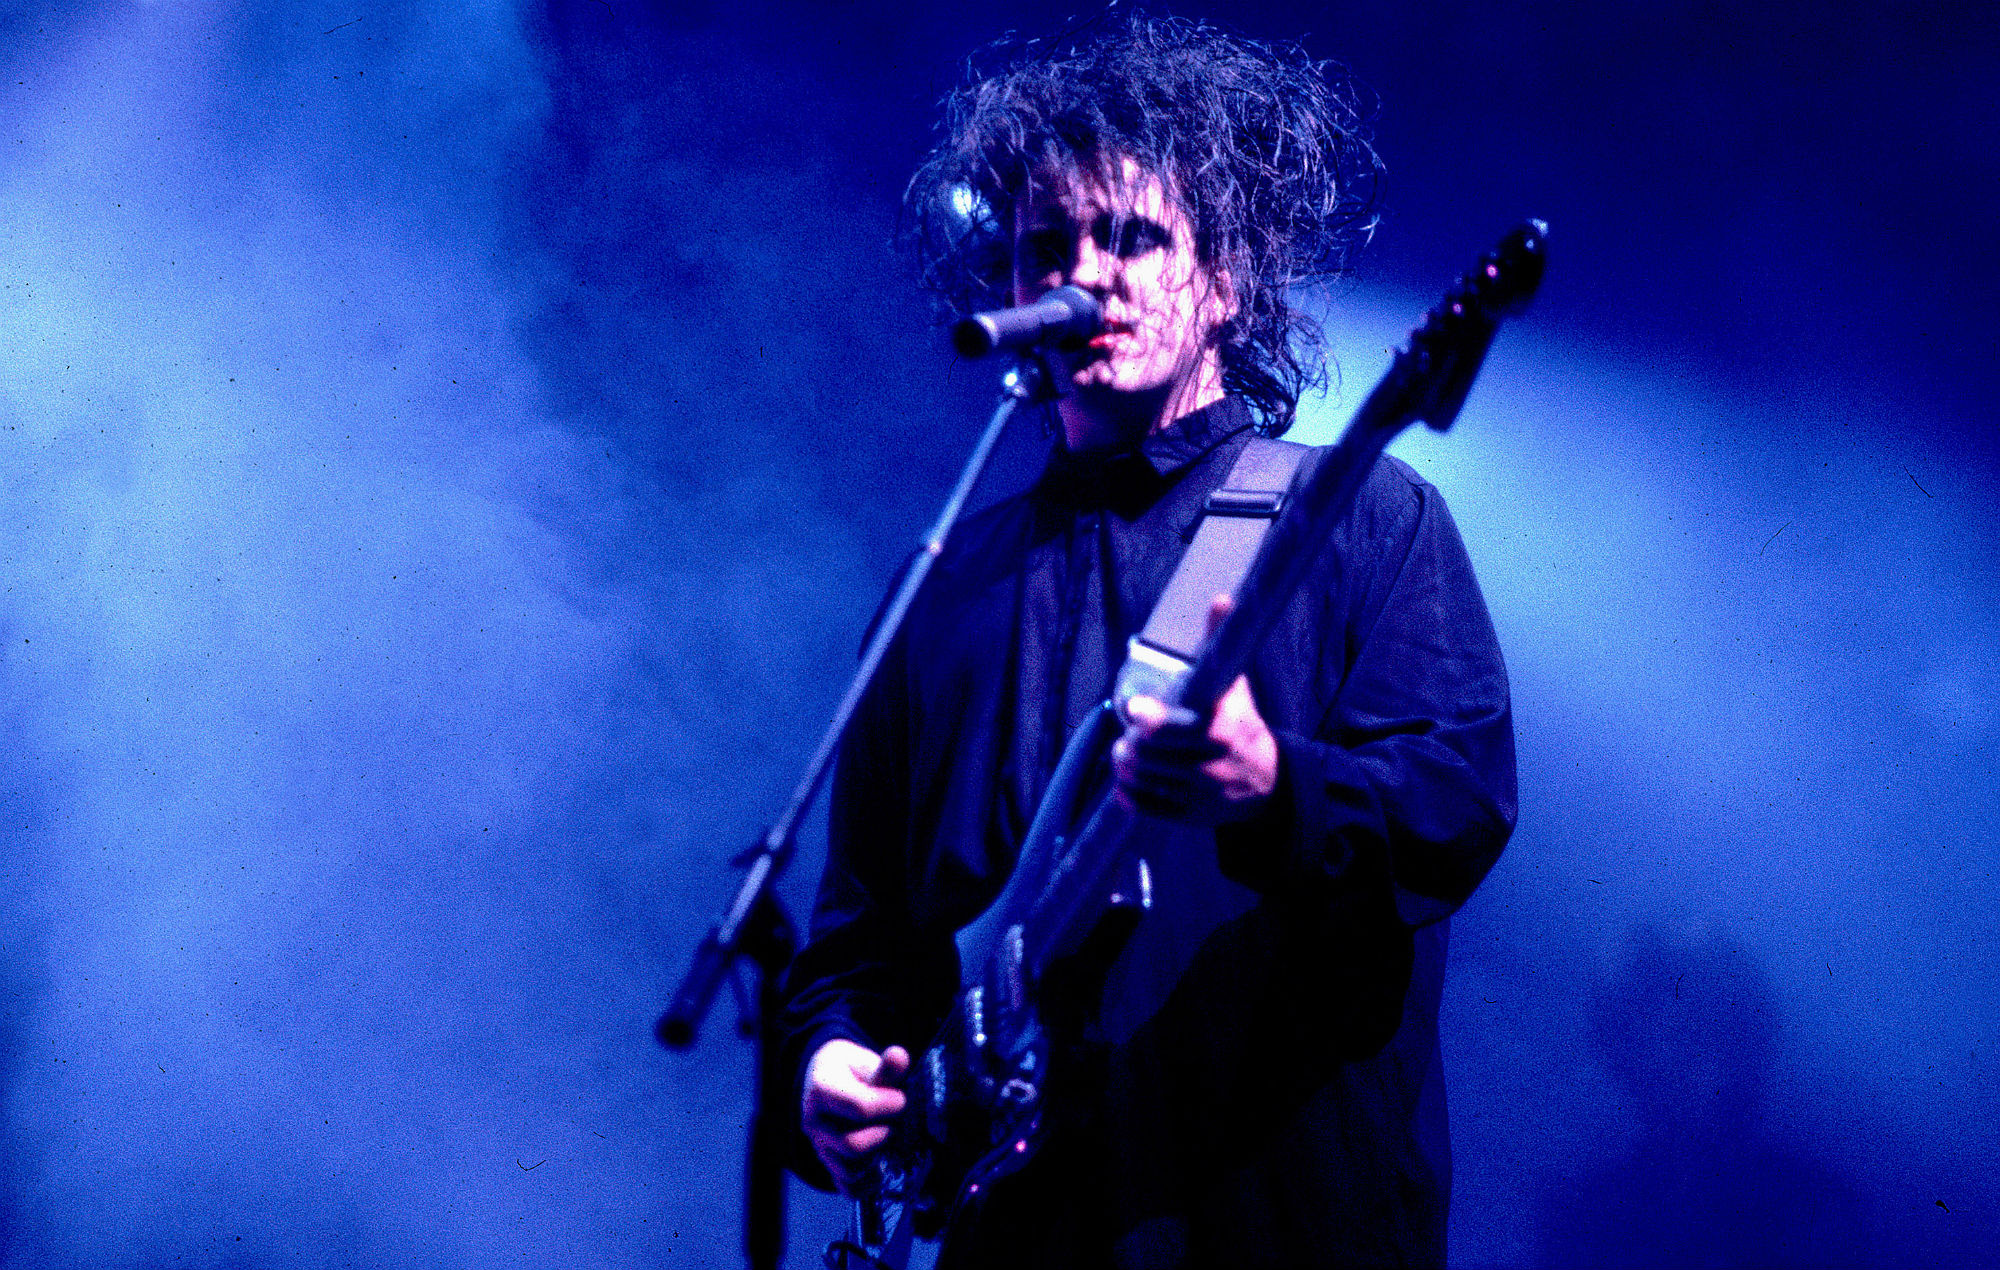 The Cure's 'Disintegration' at 30: a love letter to the